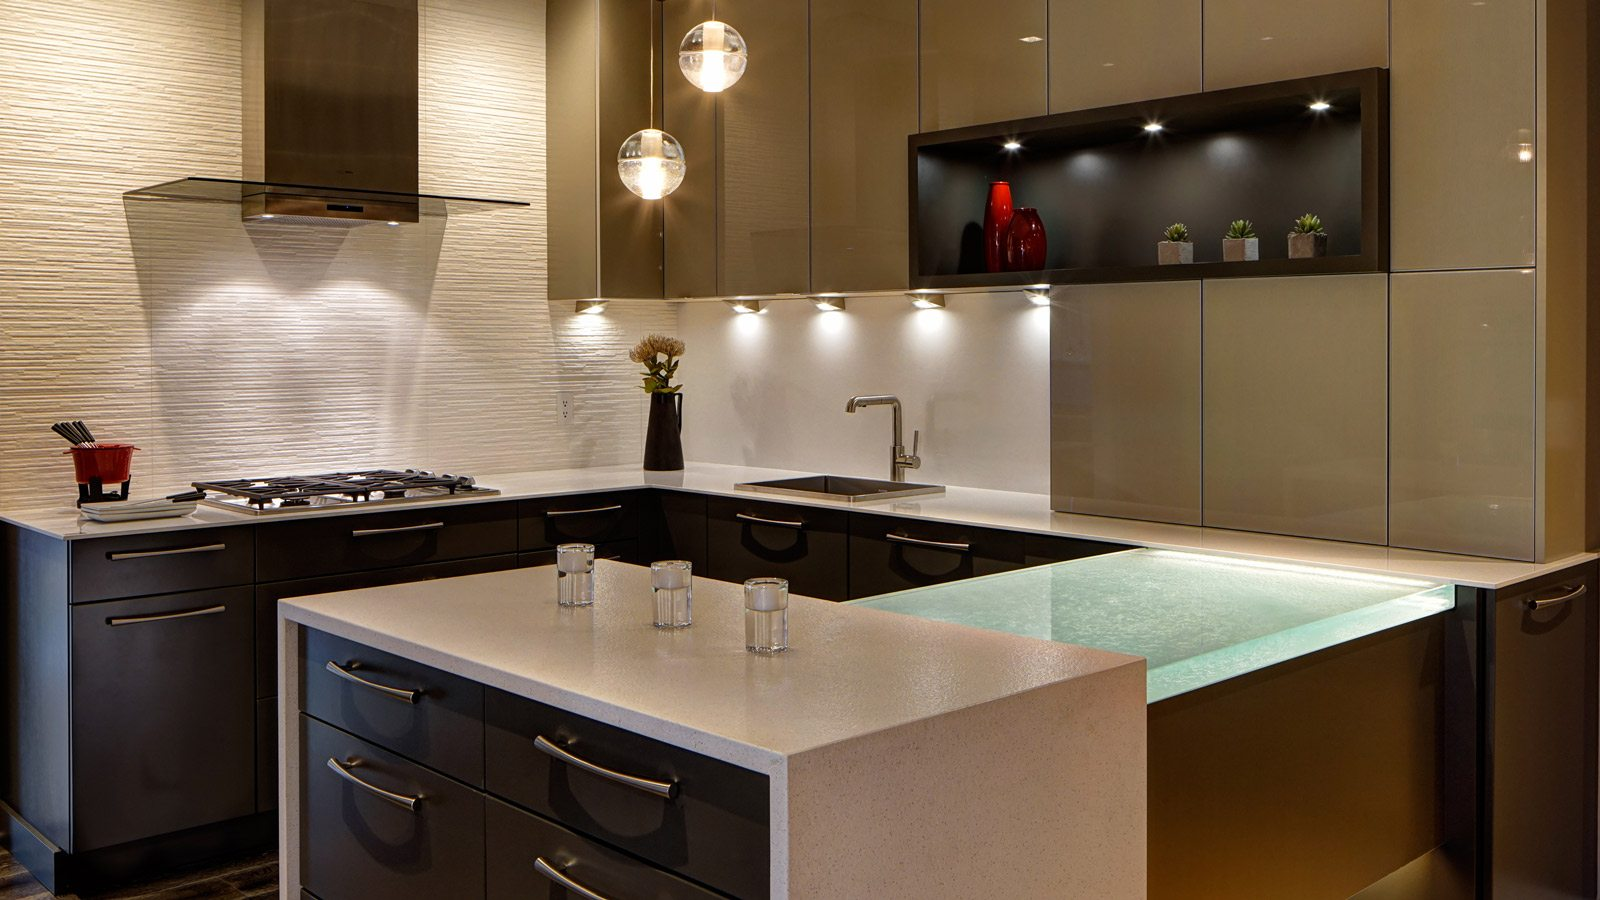 design showroom kitchen and bath design Contemporary Studio Vignette drury design